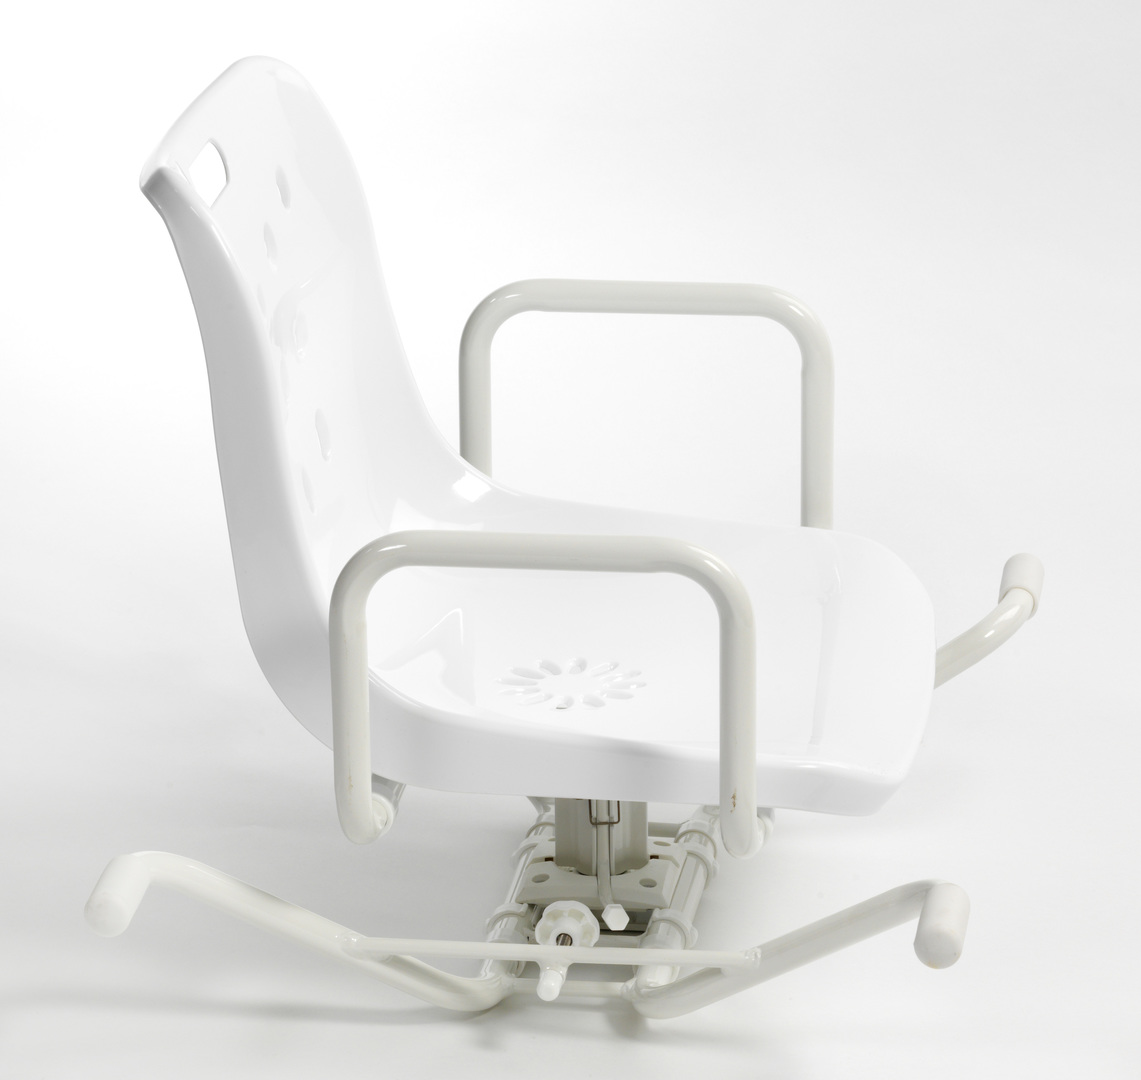 Comfort Swivel Bath Seat With Adjustable Width - World Of Scooters ...